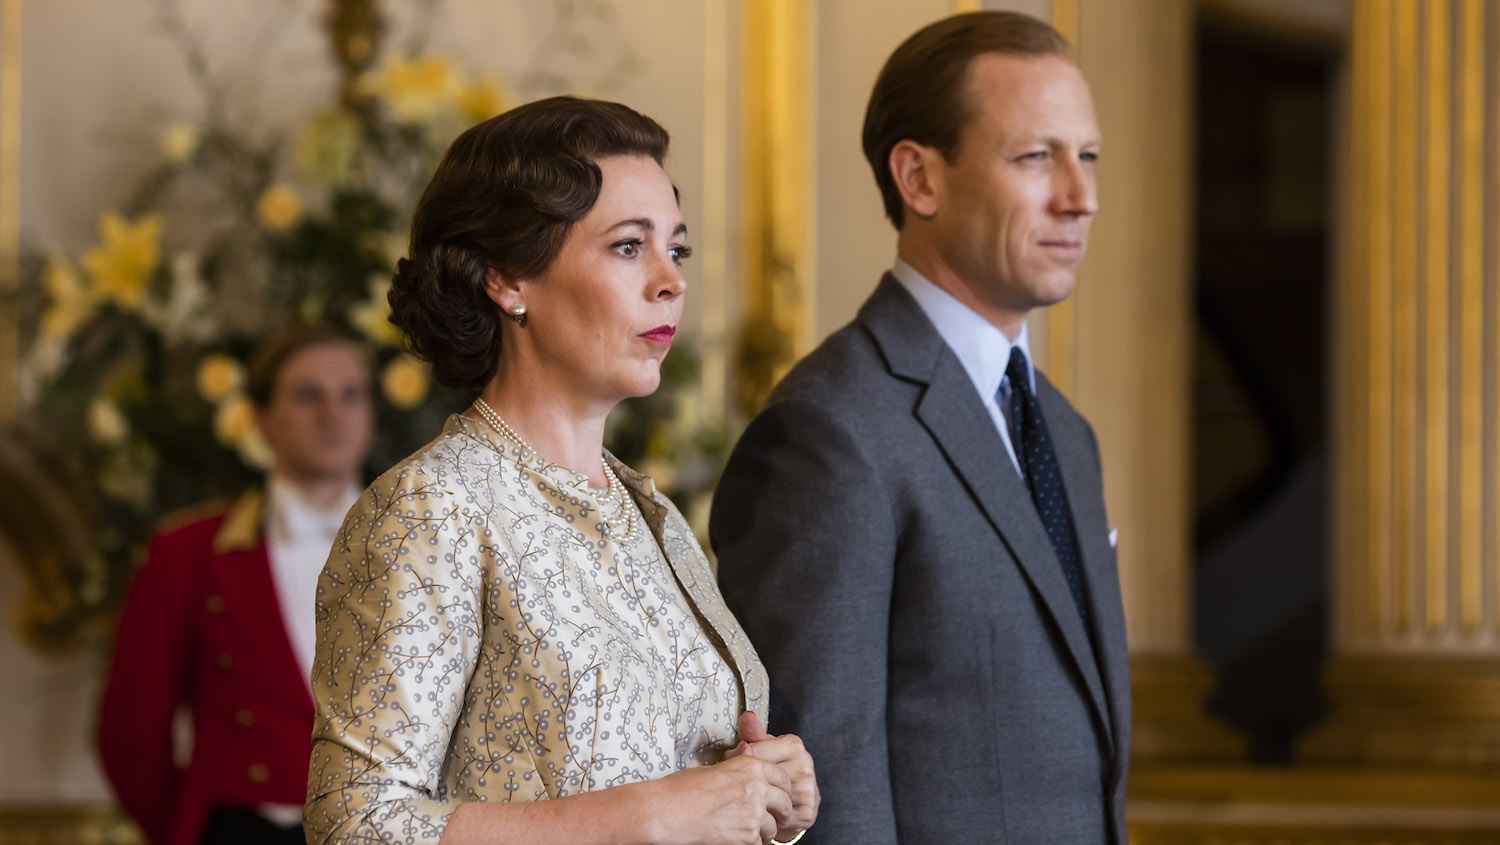 afi fest 2019, peter morgan, the crown